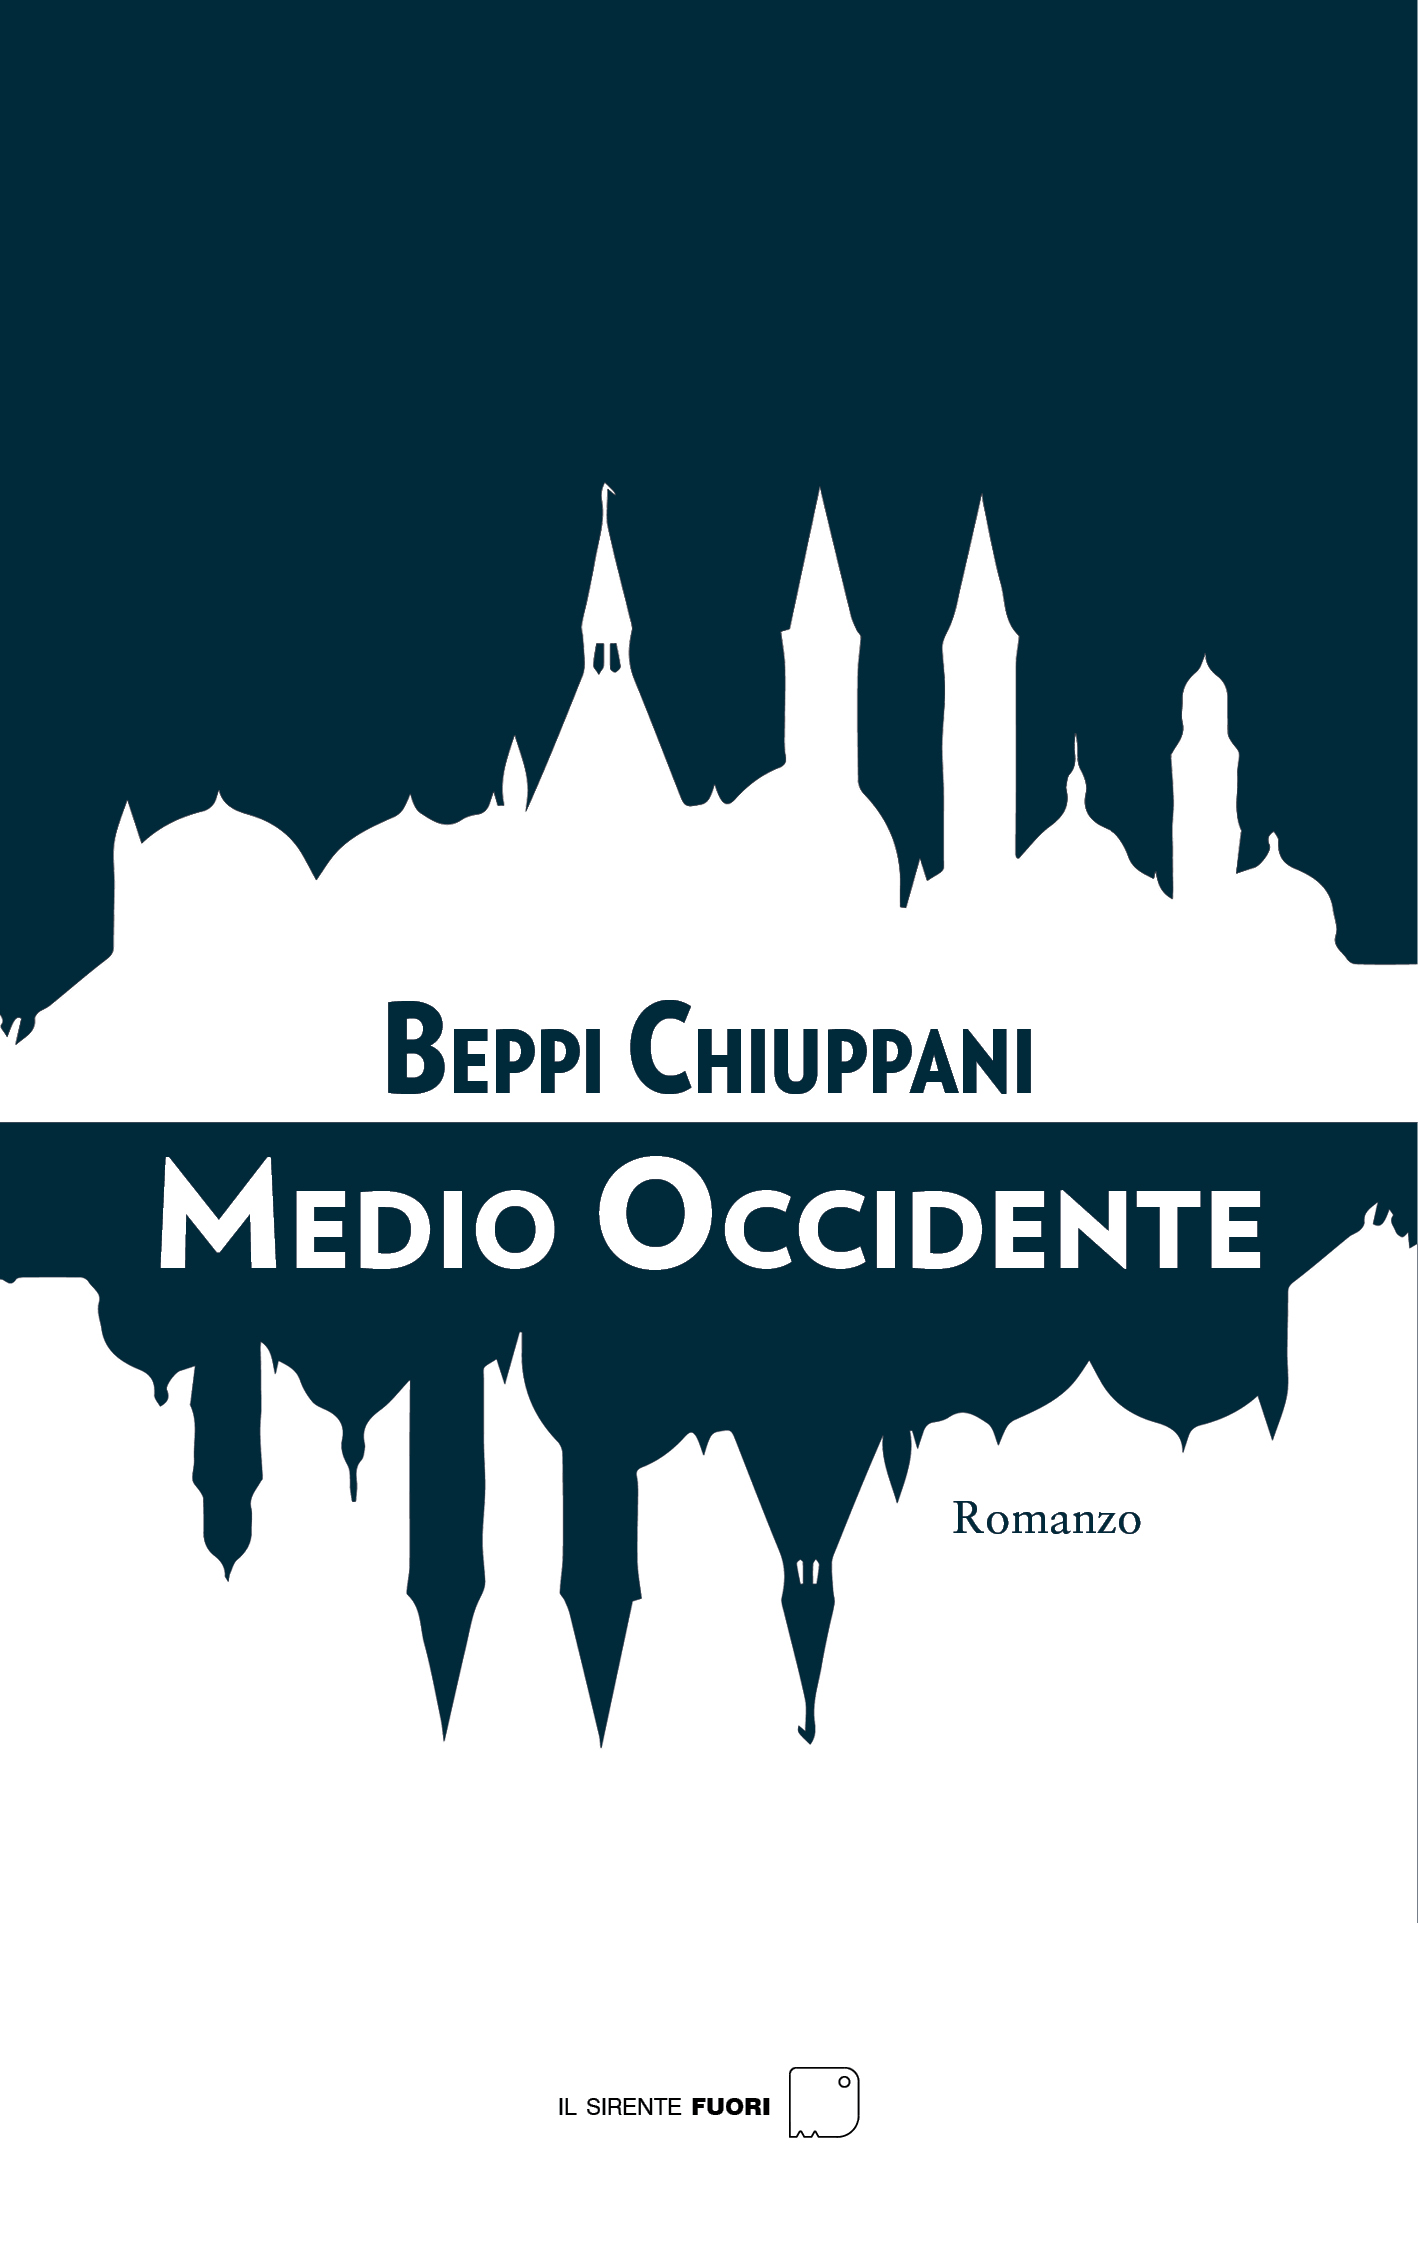 Medio Occidente : Beppi Chiuppani